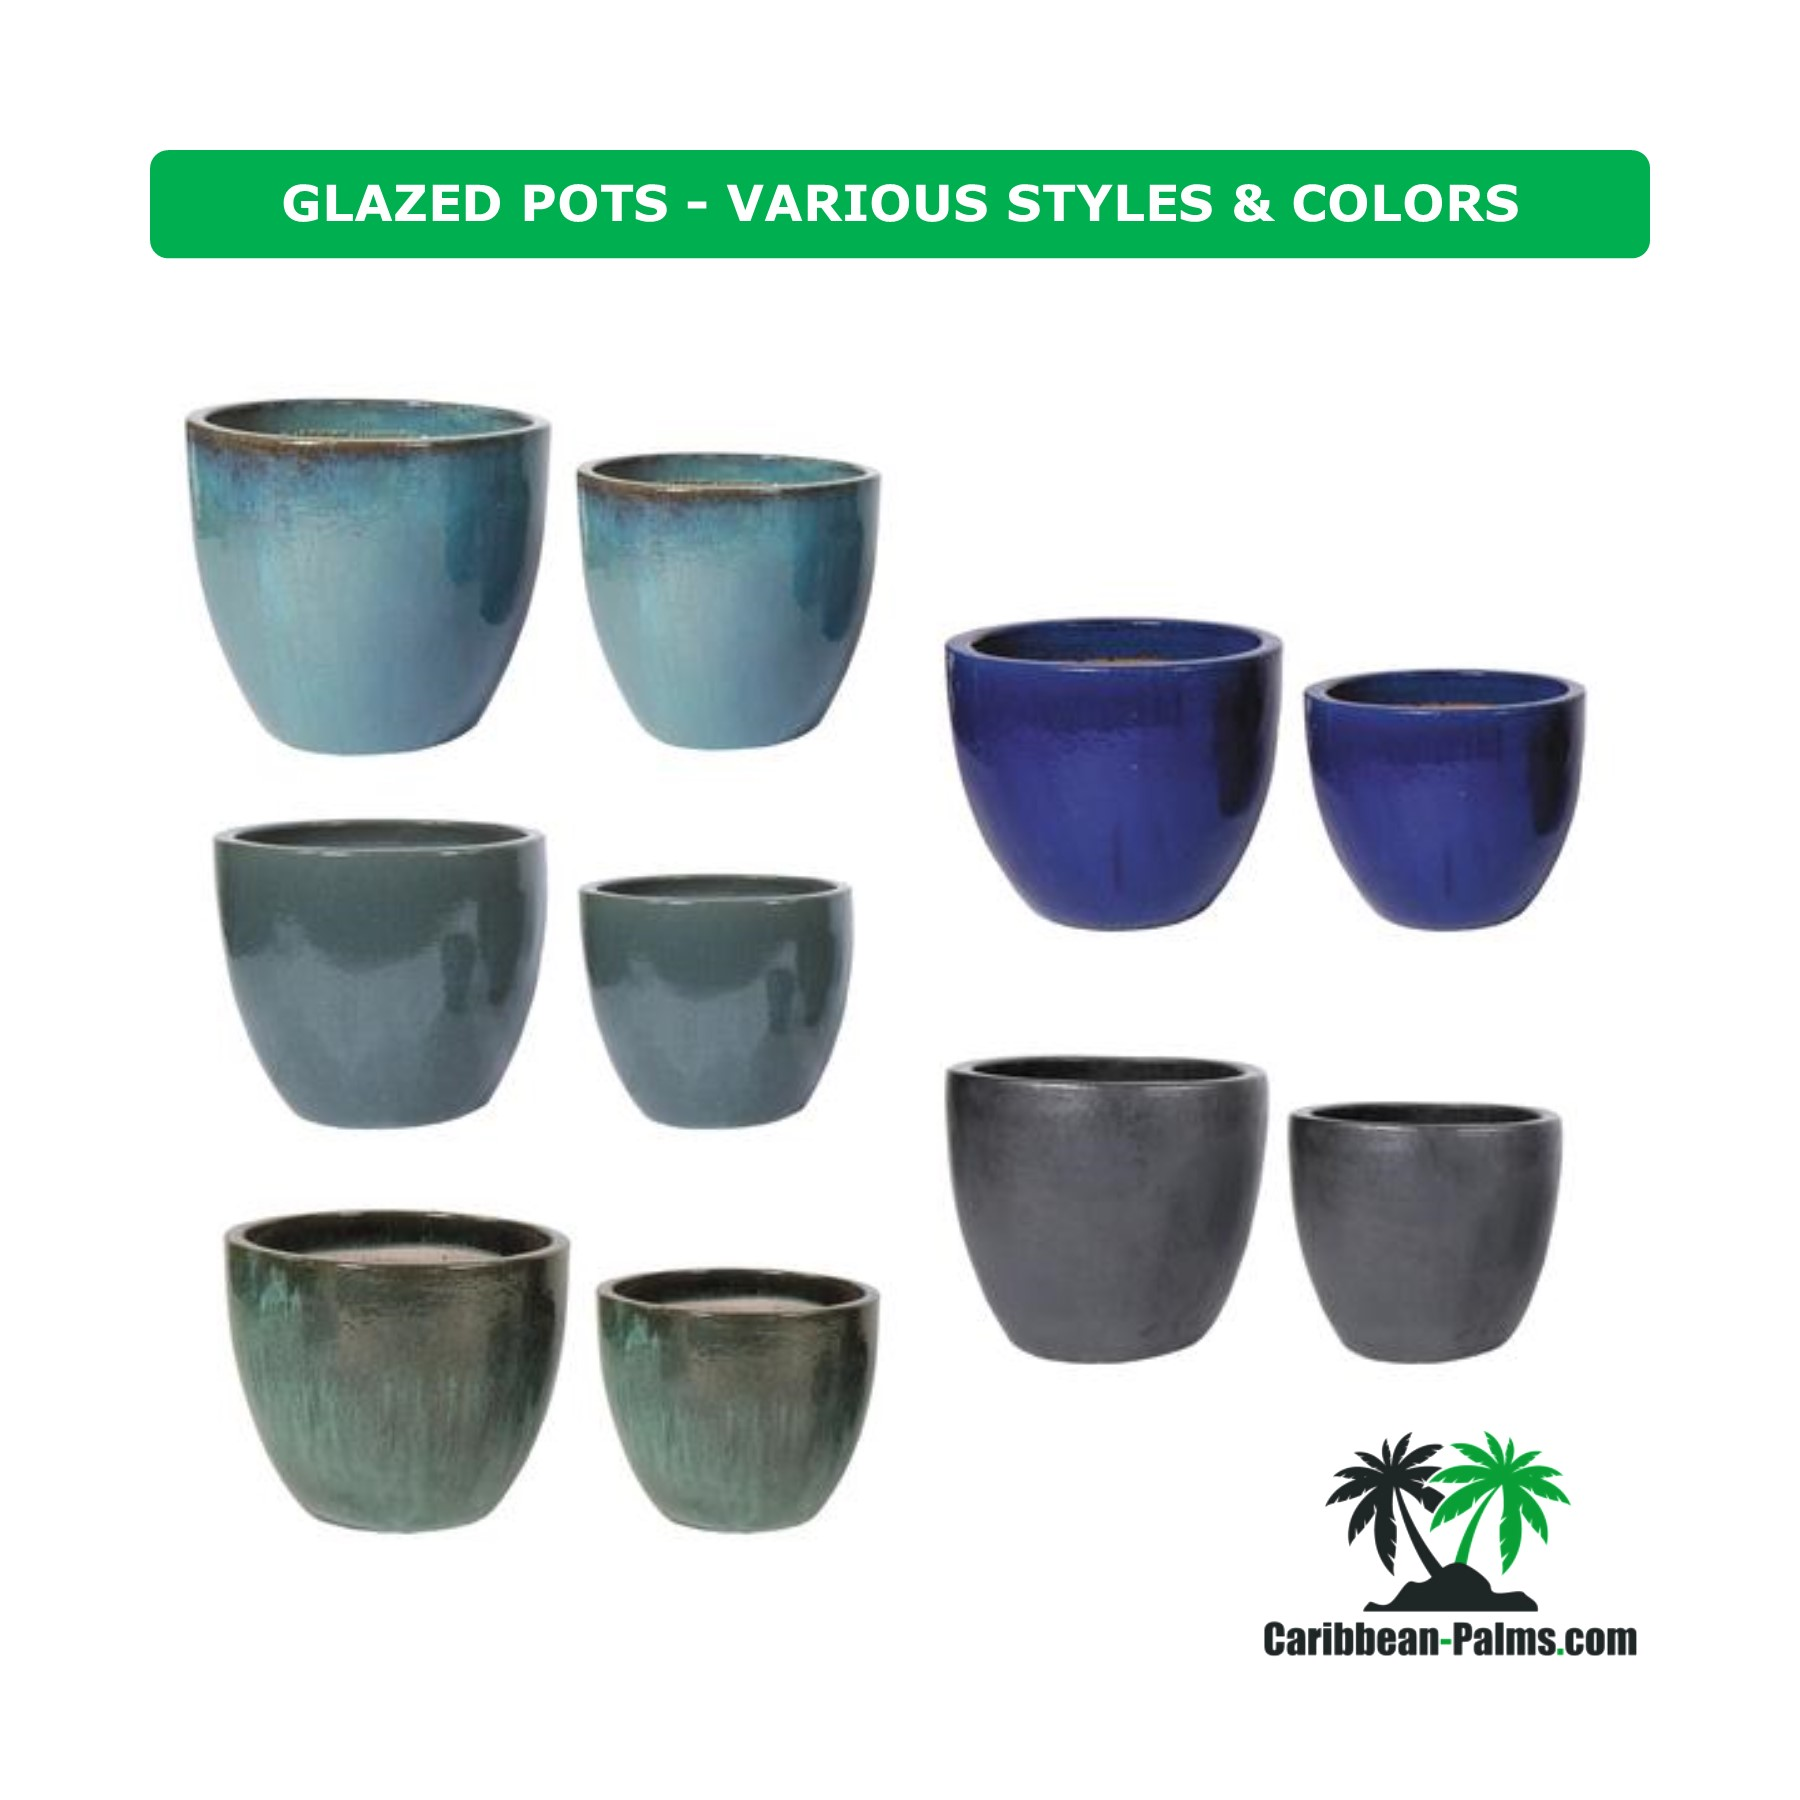 GLAZED POTS VARIOUS STYLES COLORS 1